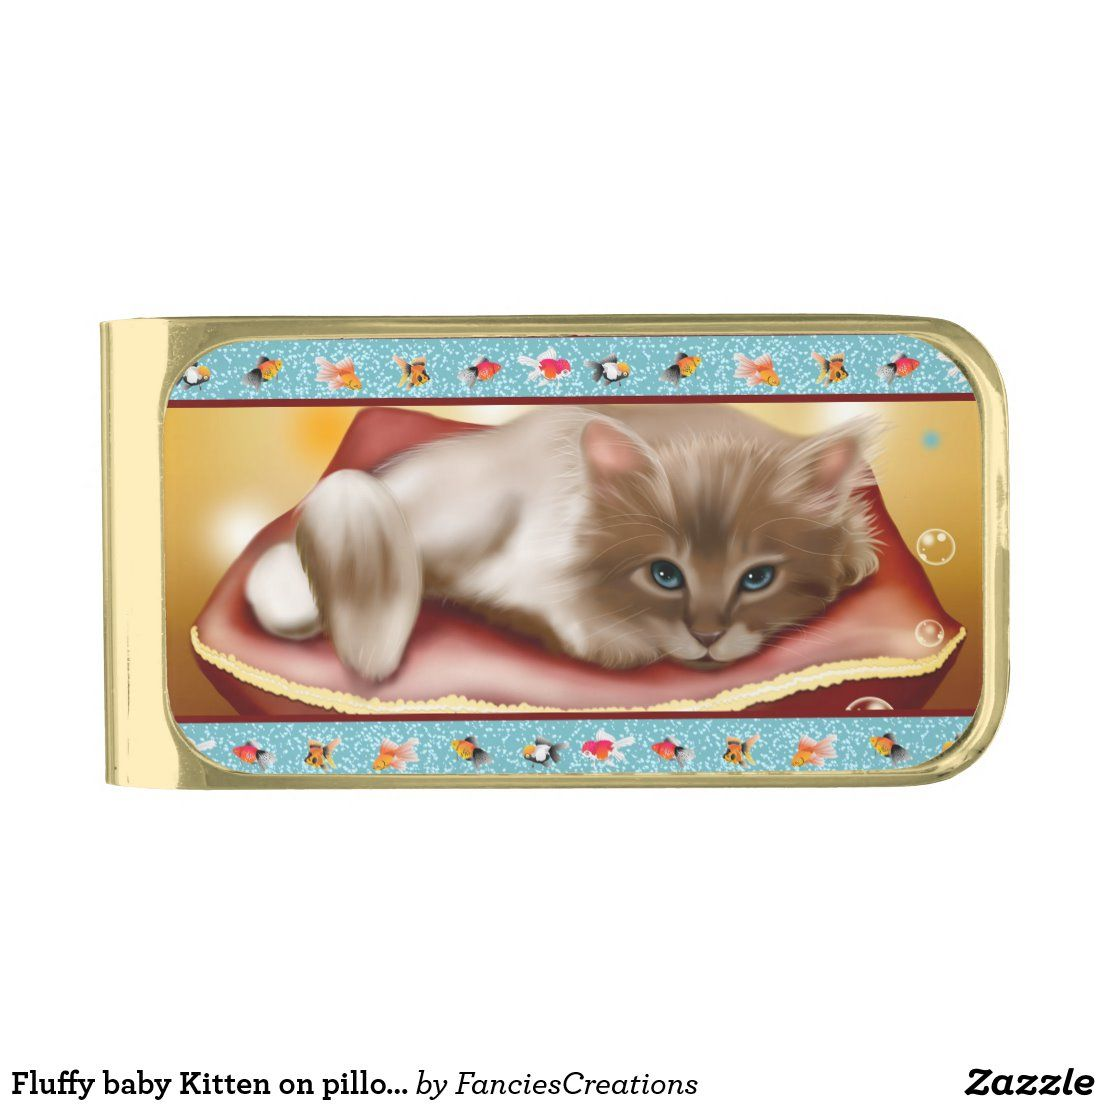 Fluffy Baby Kitten On Pillow Day Dreaming Of Fish Gold Finish Money Clip Zazzle Com In 2020 Baby Kittens Custom Money Clips Fun To Be One